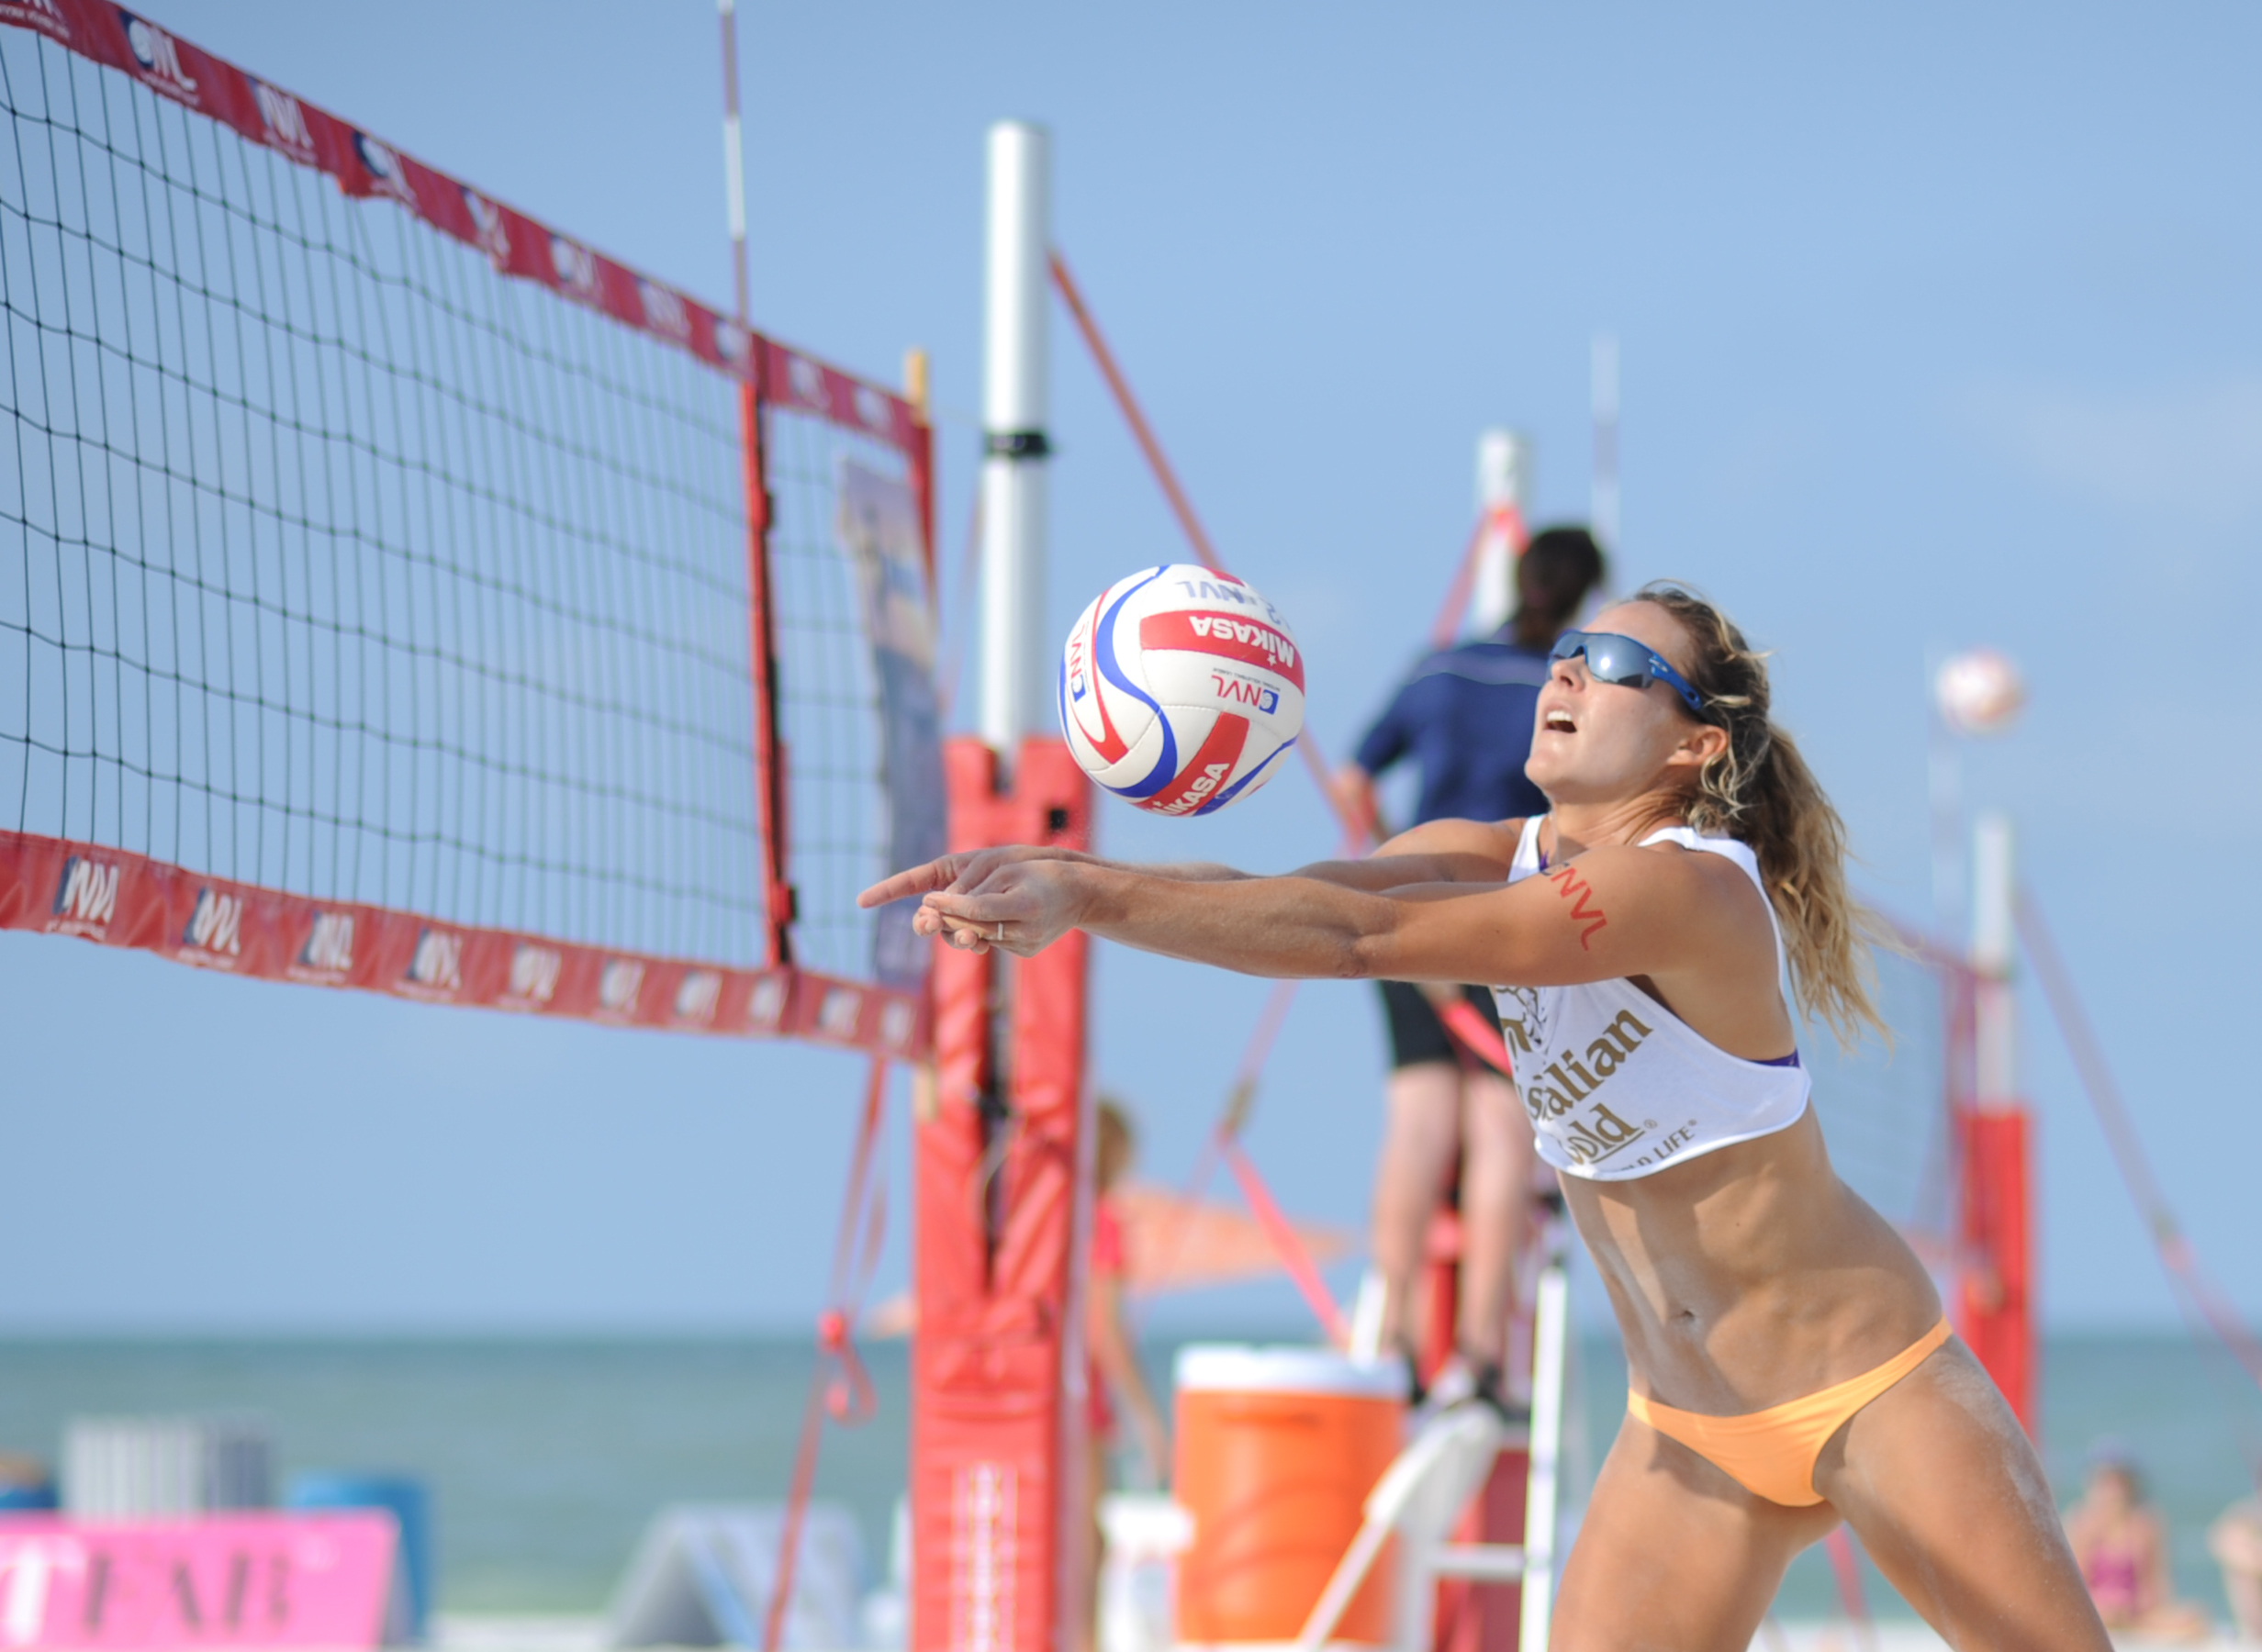 NVL Madeira Beach Championships Finals Preview